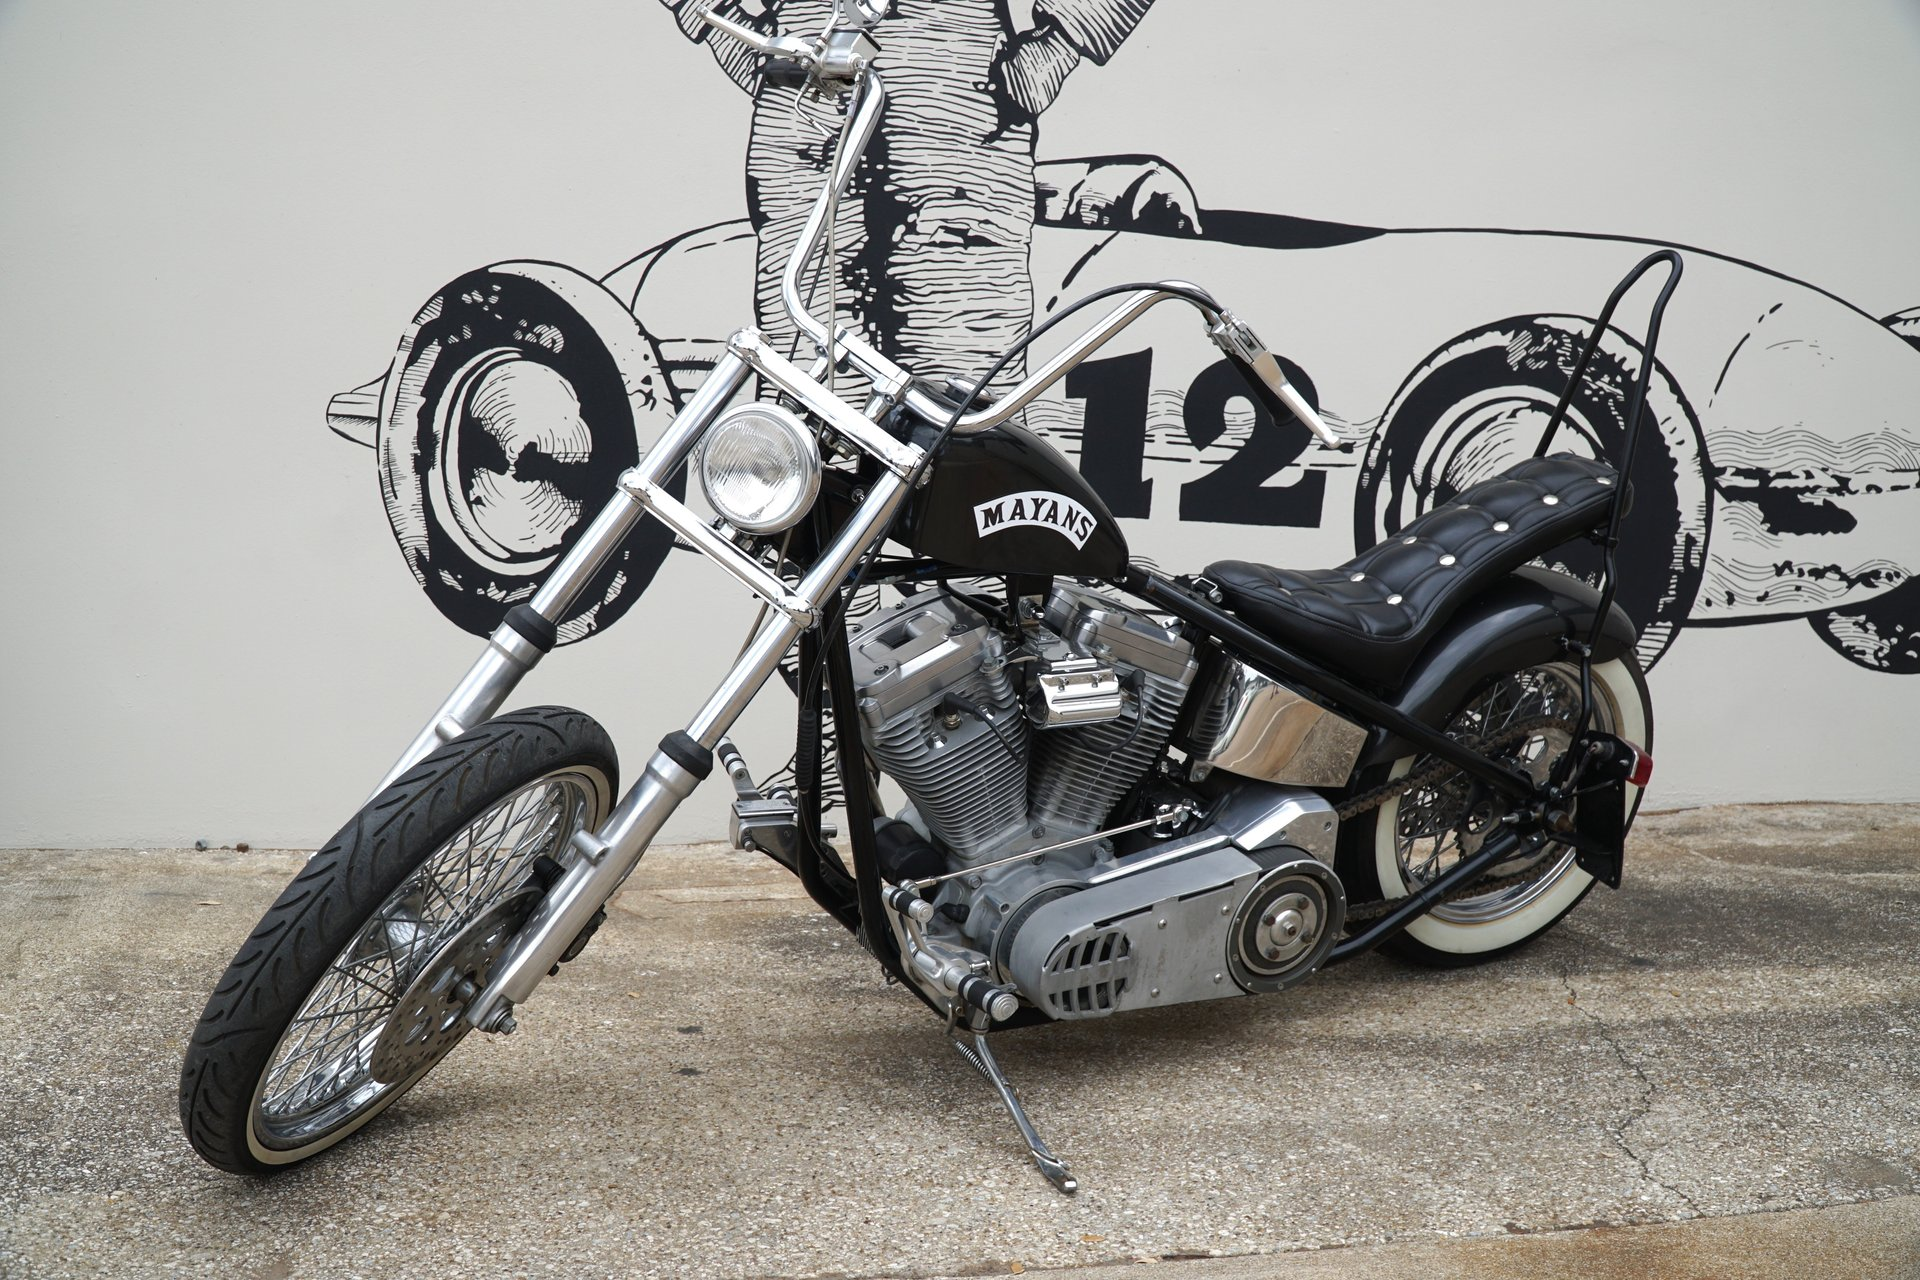 2005 spsll old school chopper motorcycle mayan sons of anarchy